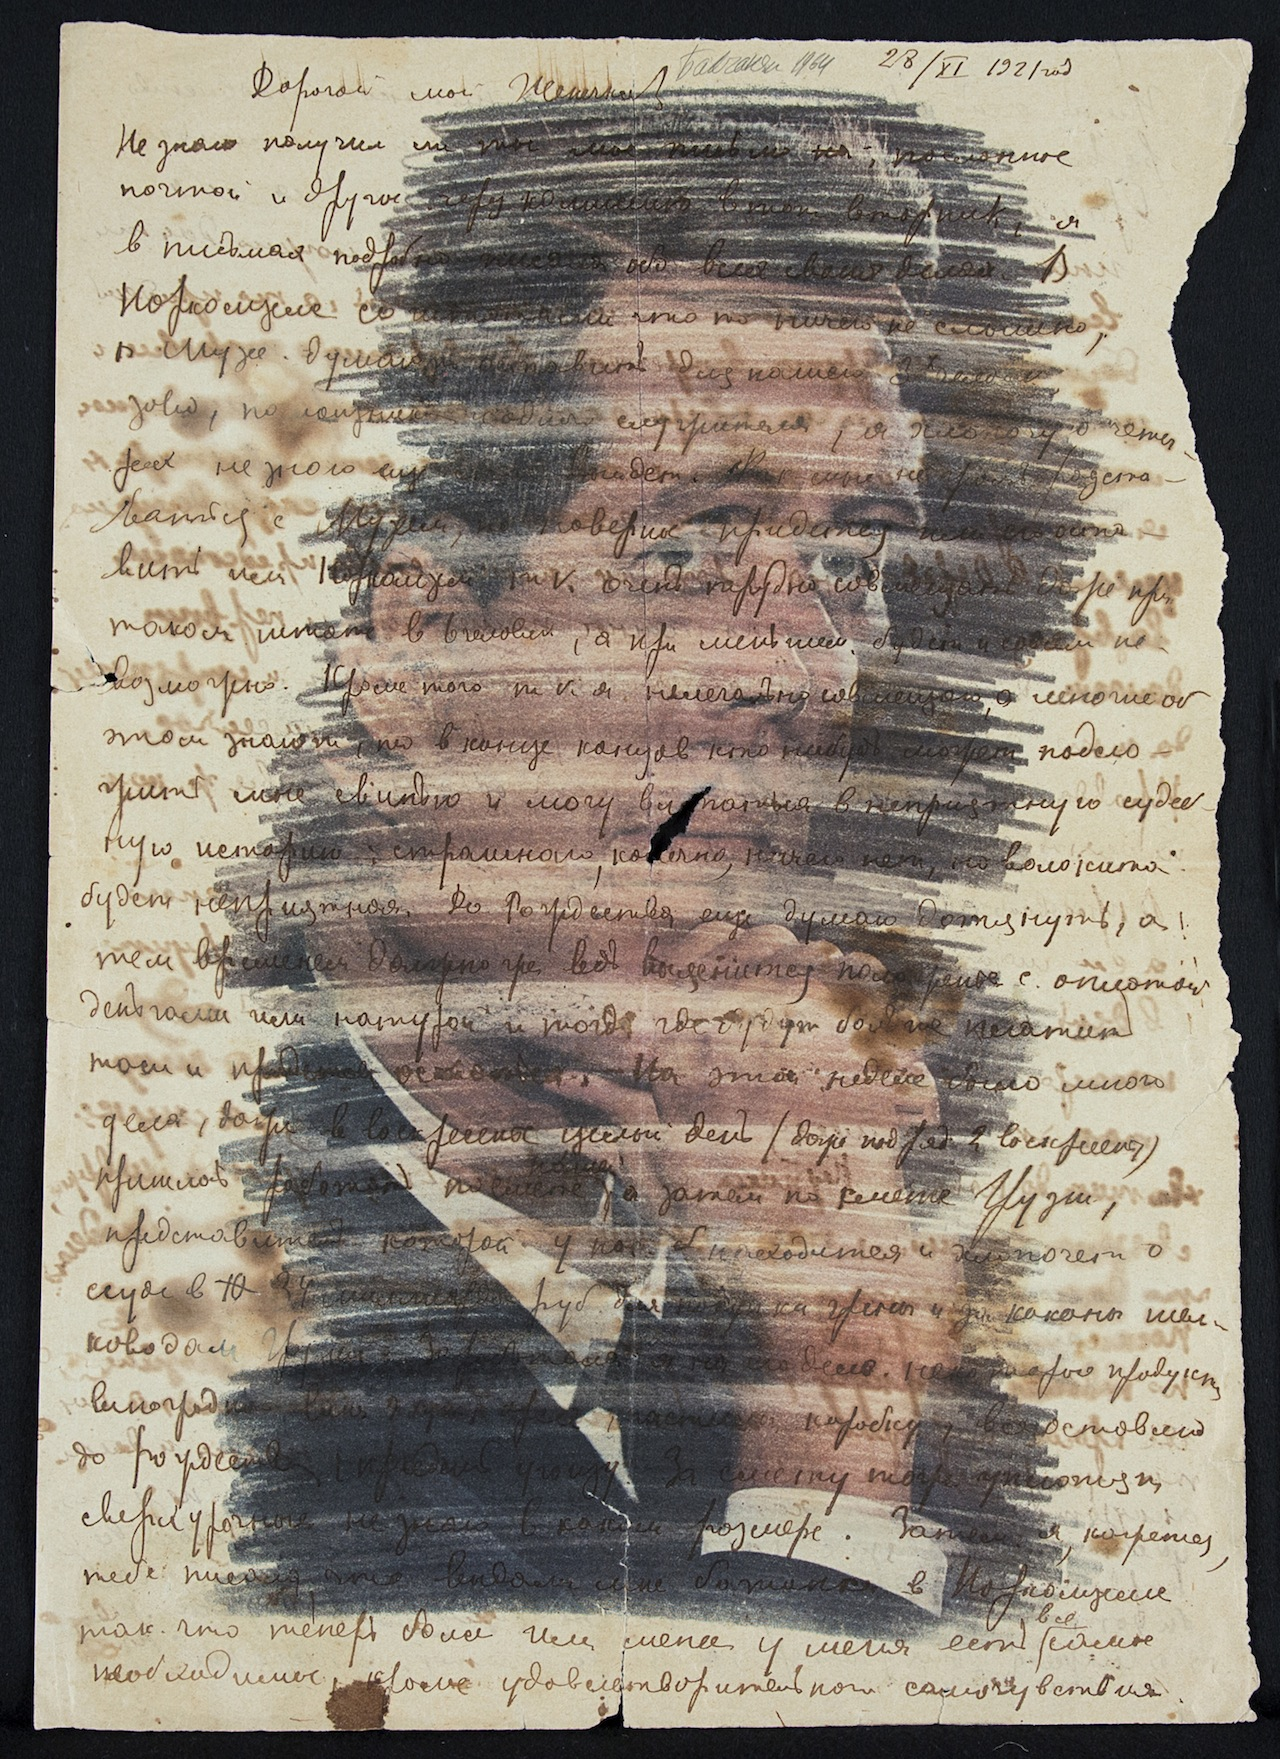 Vagrich Bakhchanyan, Untitled (1964), transfer process and ink on paper, 32.8 x 22.9 cm (image courtesy of Zimmerli Art Museum) (click to enlarge)